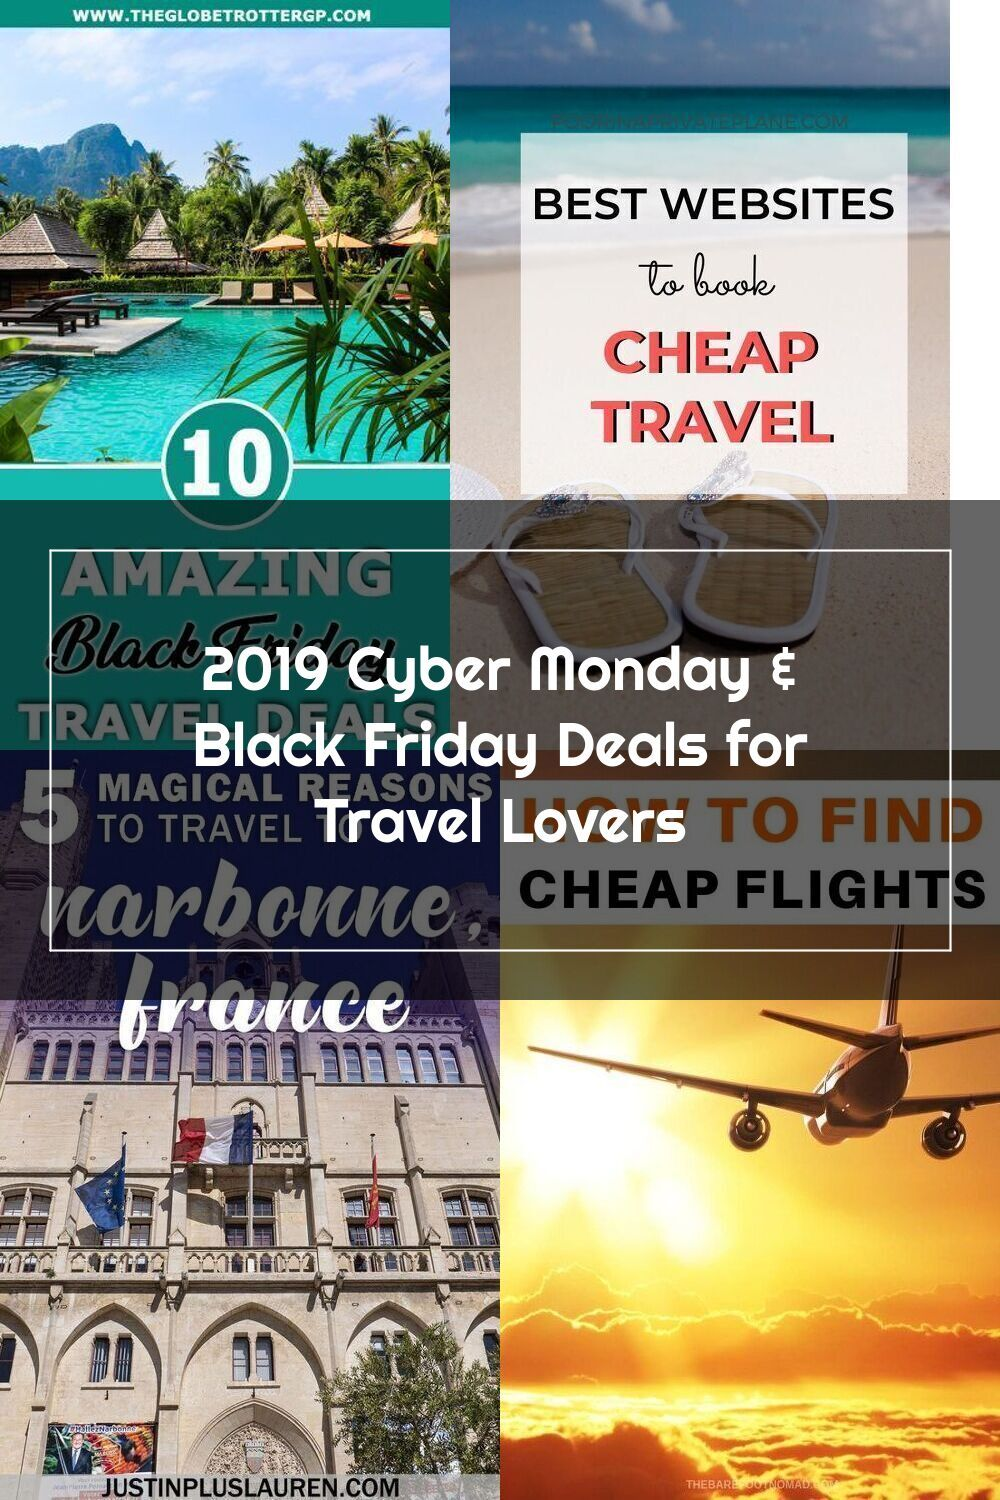 Black Friday Travel Deals And Cyber Monday Travel Sales Black Friday Flights Accommodation Tours And Eq In 2020 Black Friday Travel Deals Travel Deals Travel Sales